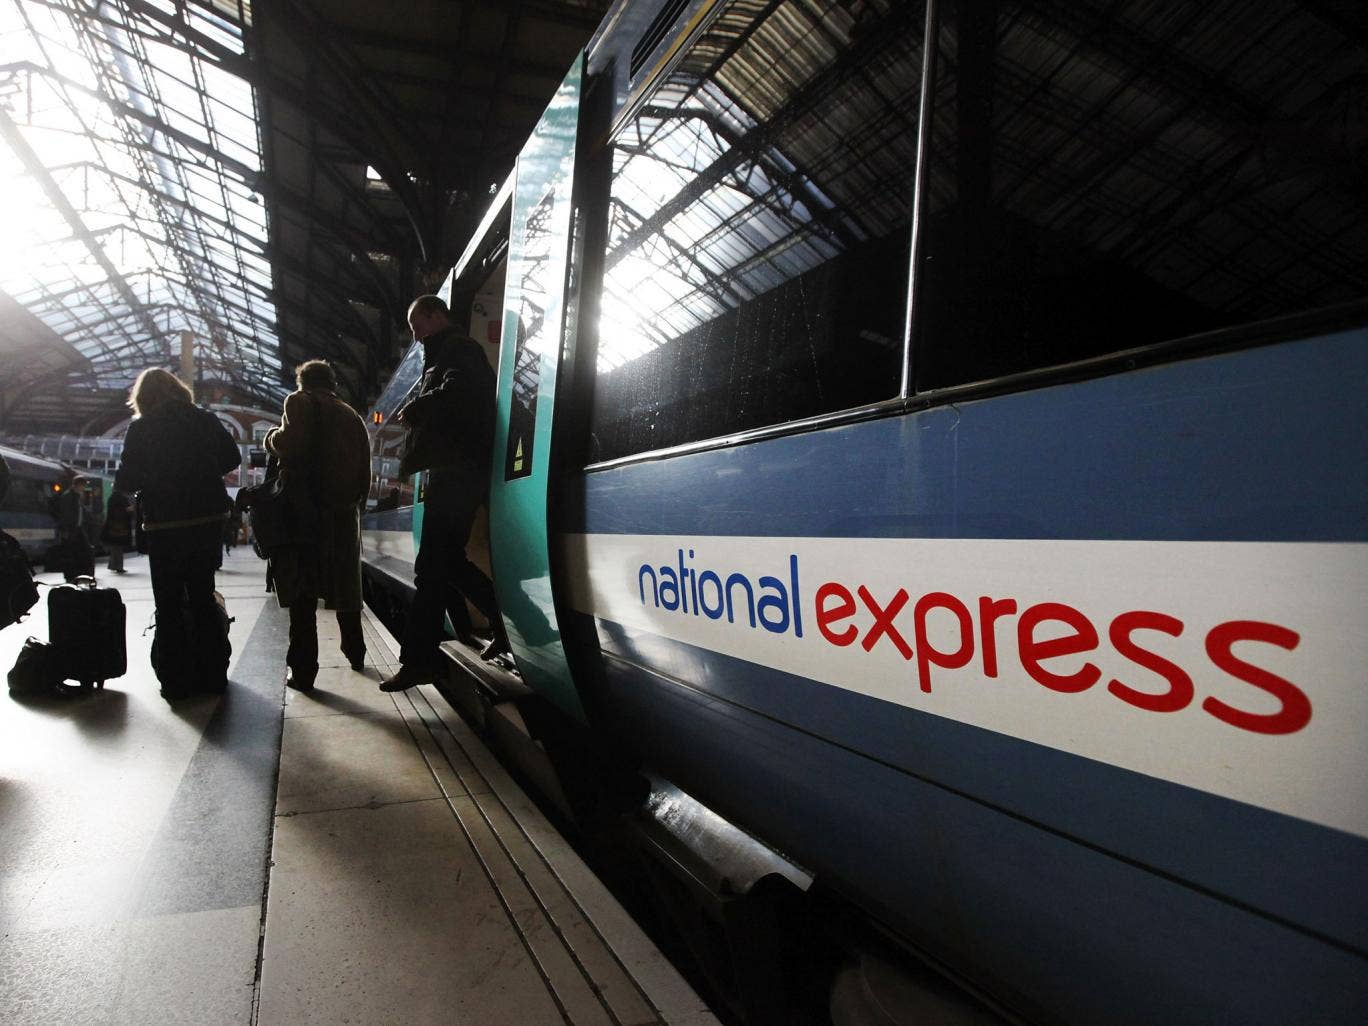 Members of the public disembark a National Express train